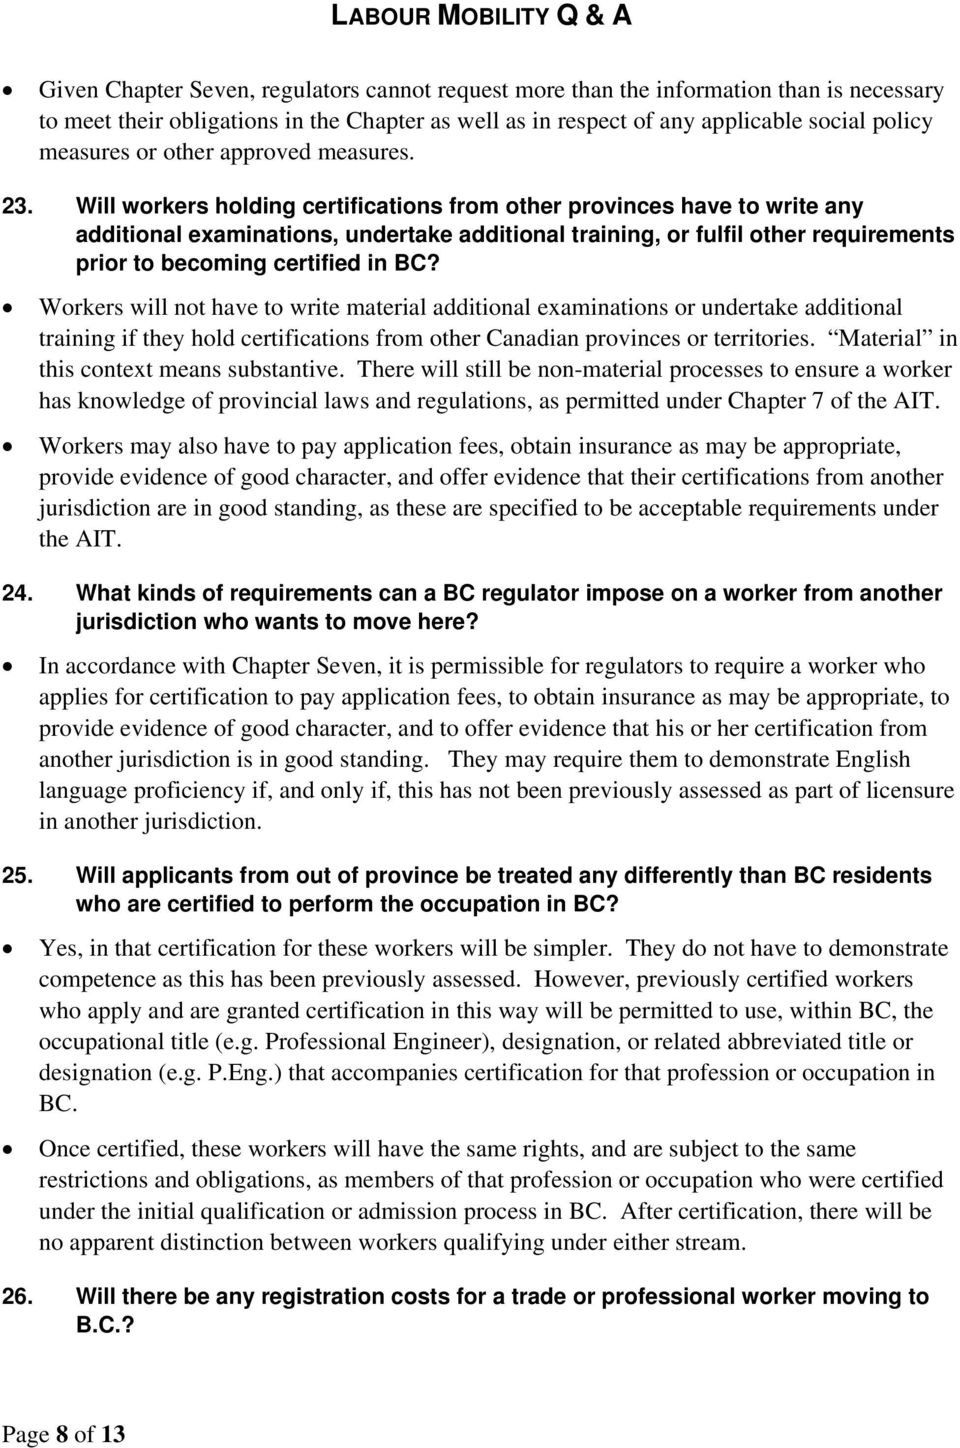 Will workers holding certifications from other provinces have to write any additional examinations, undertake additional training, or fulfil other requirements prior to becoming certified in BC?